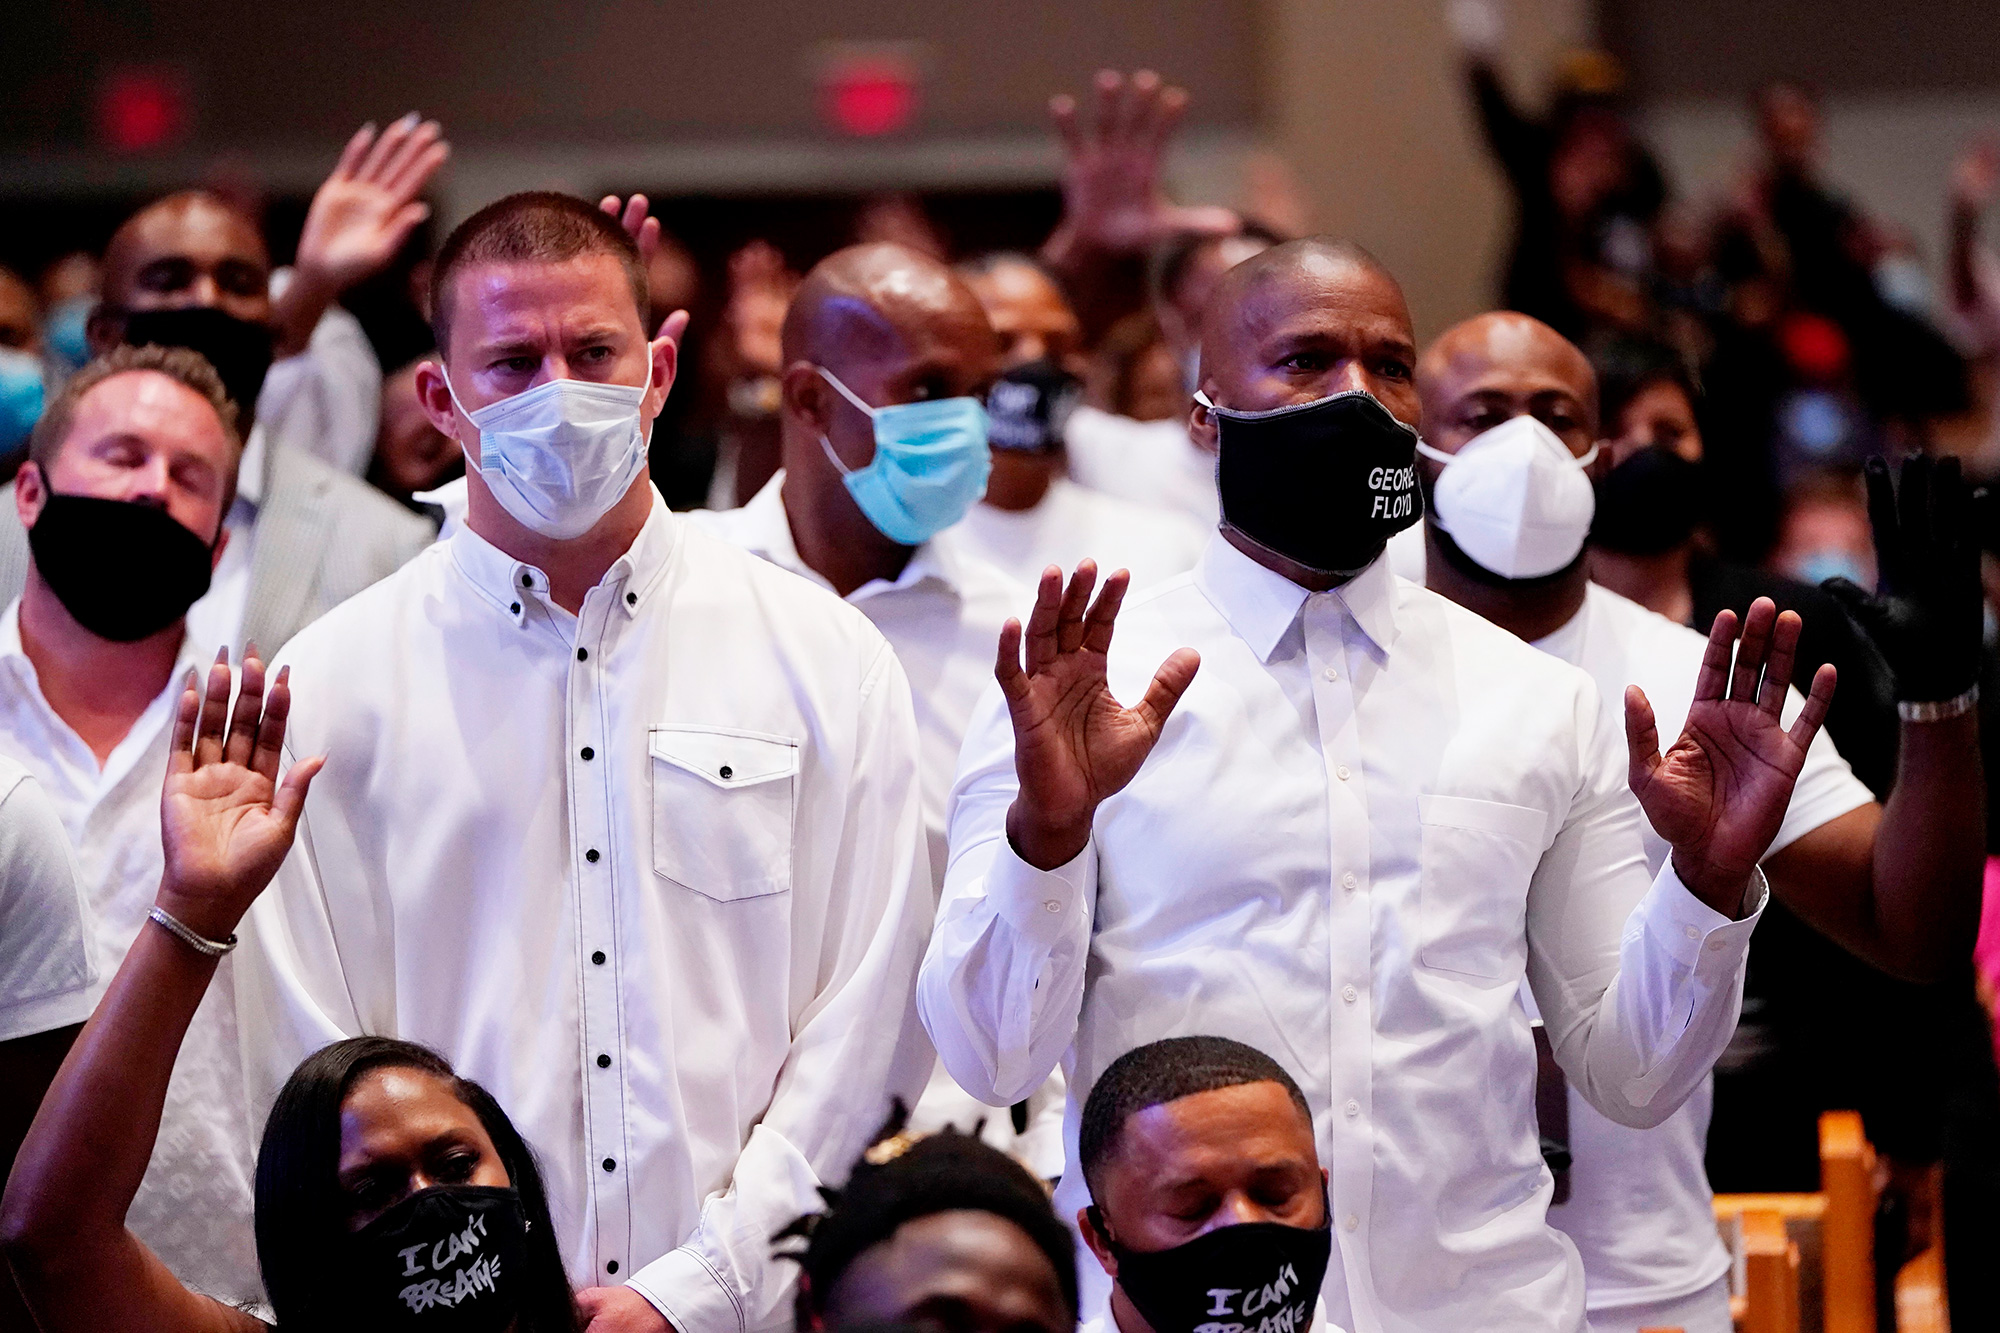 Channing Tatum (L) and Jamie Foxx (R) take part in the funeral of George Floyd on June 9, 2020, at The Fountain of Praise church in Houston, Texas